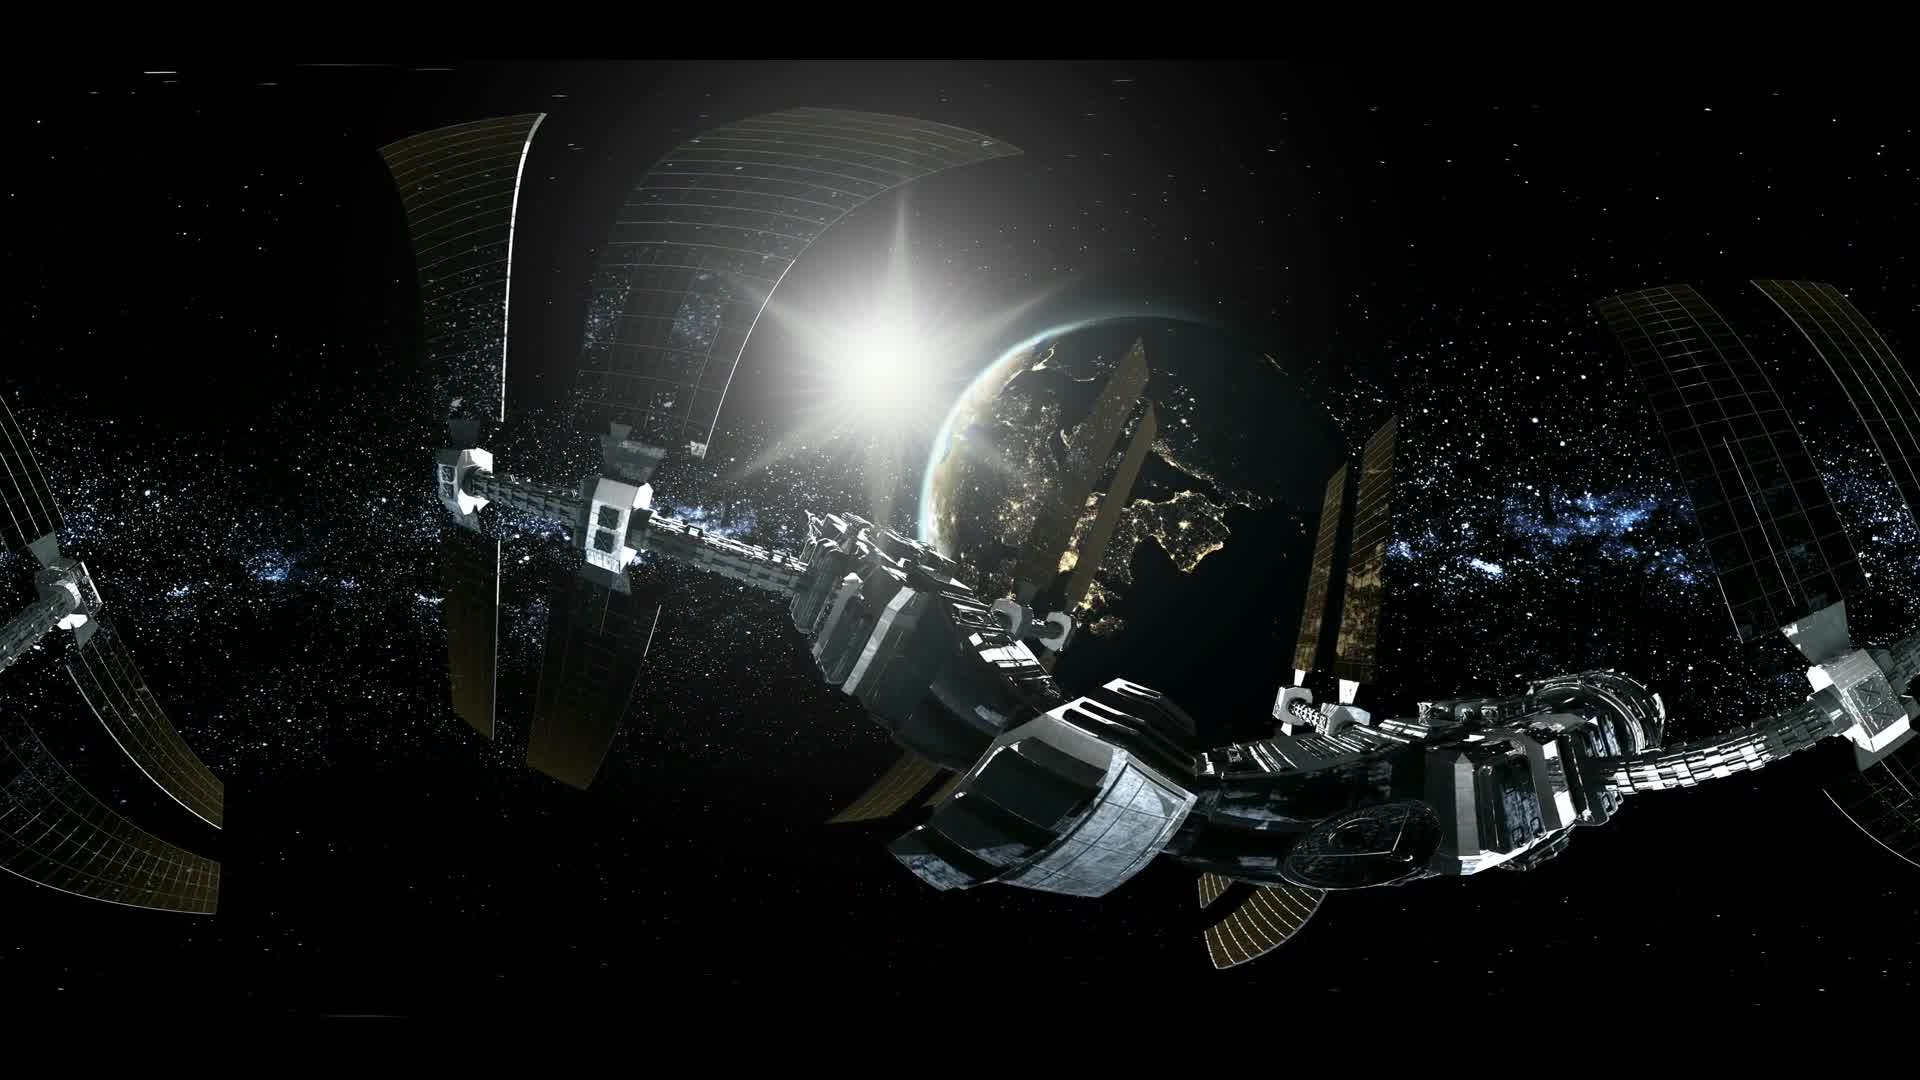 ISS in virtual reality 360 degree video. International Space Station Orbiting